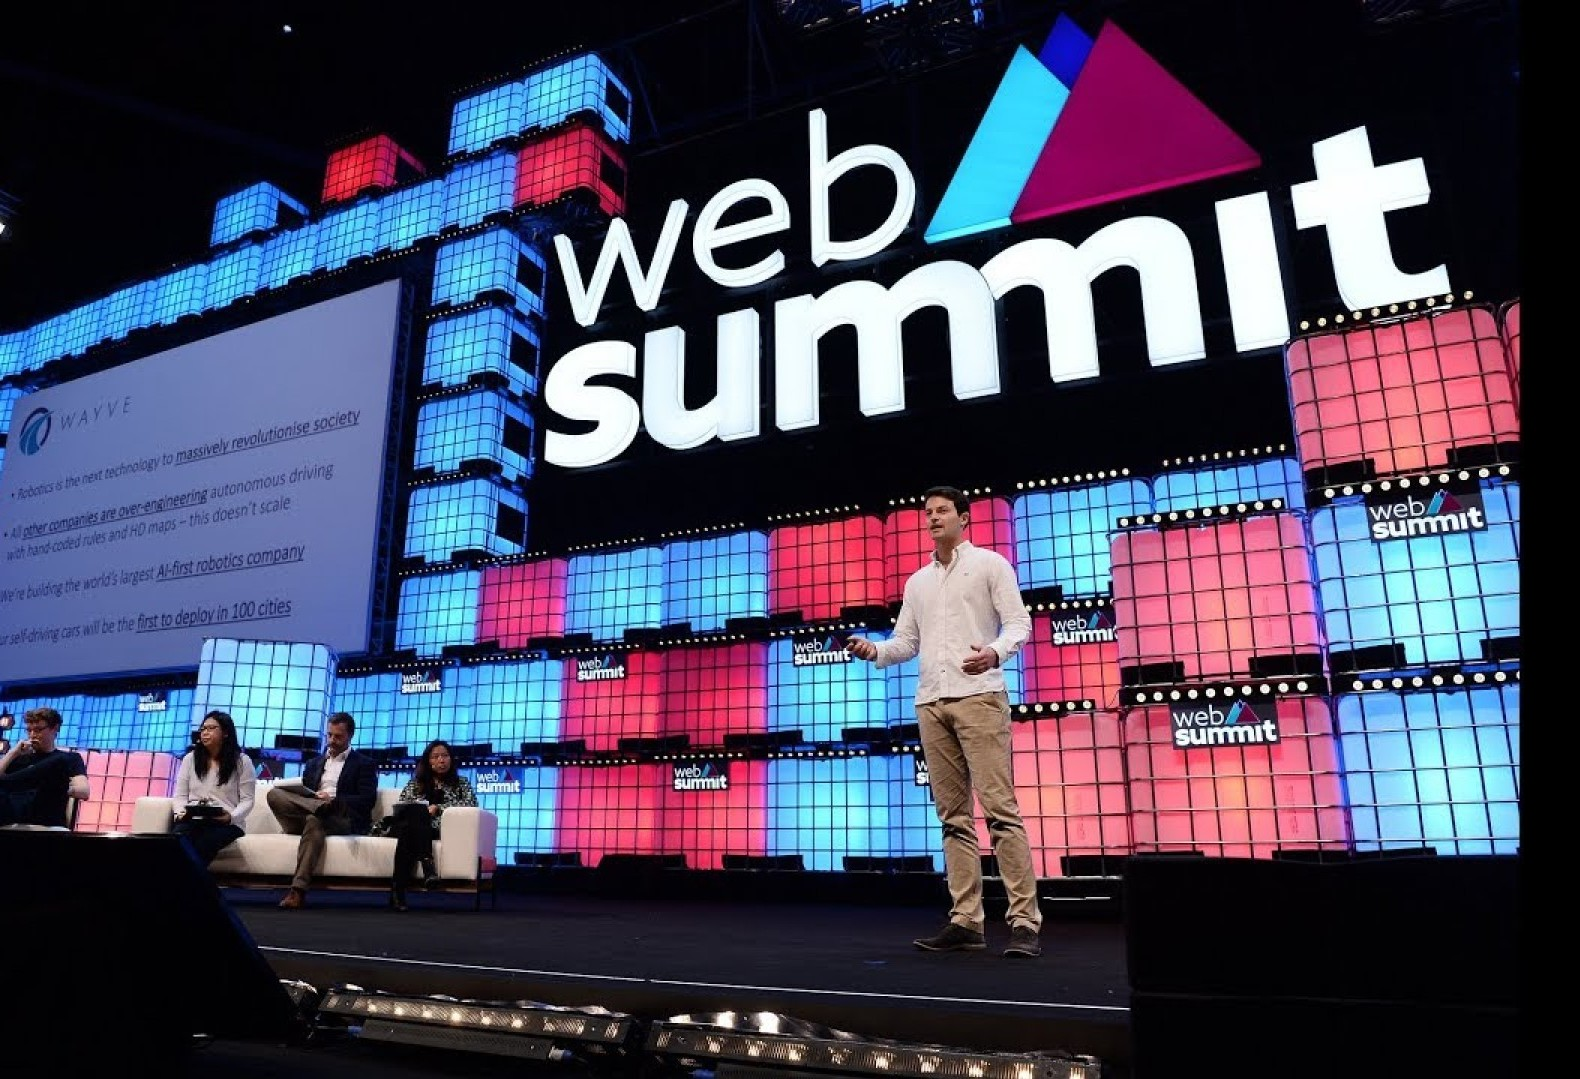 Wilmar's Web Summit: Opening Day Highlights